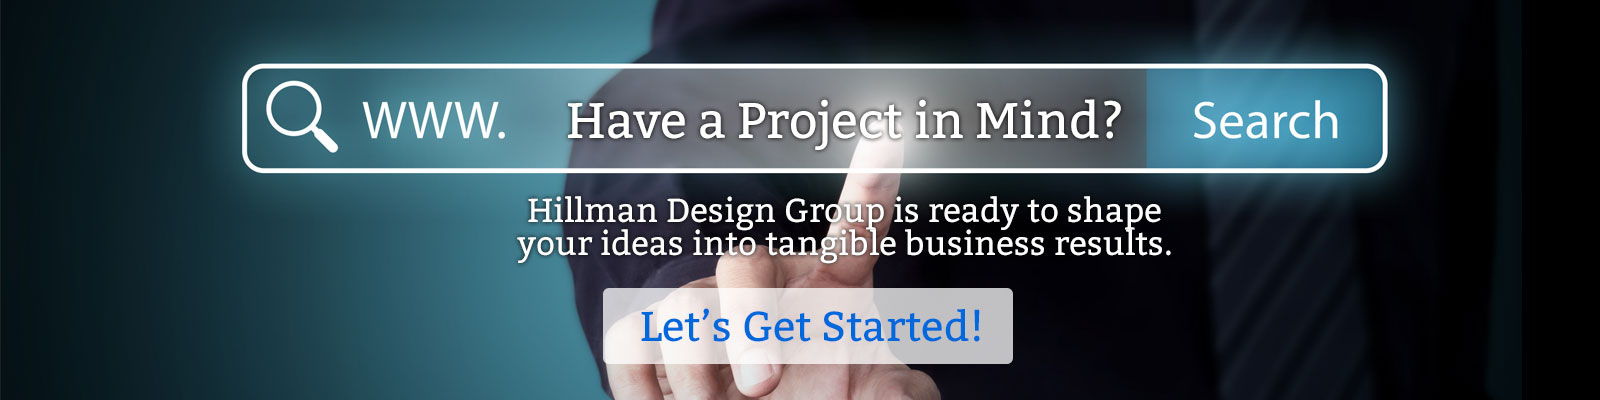 Have a Project in Mind - Let's Get Started